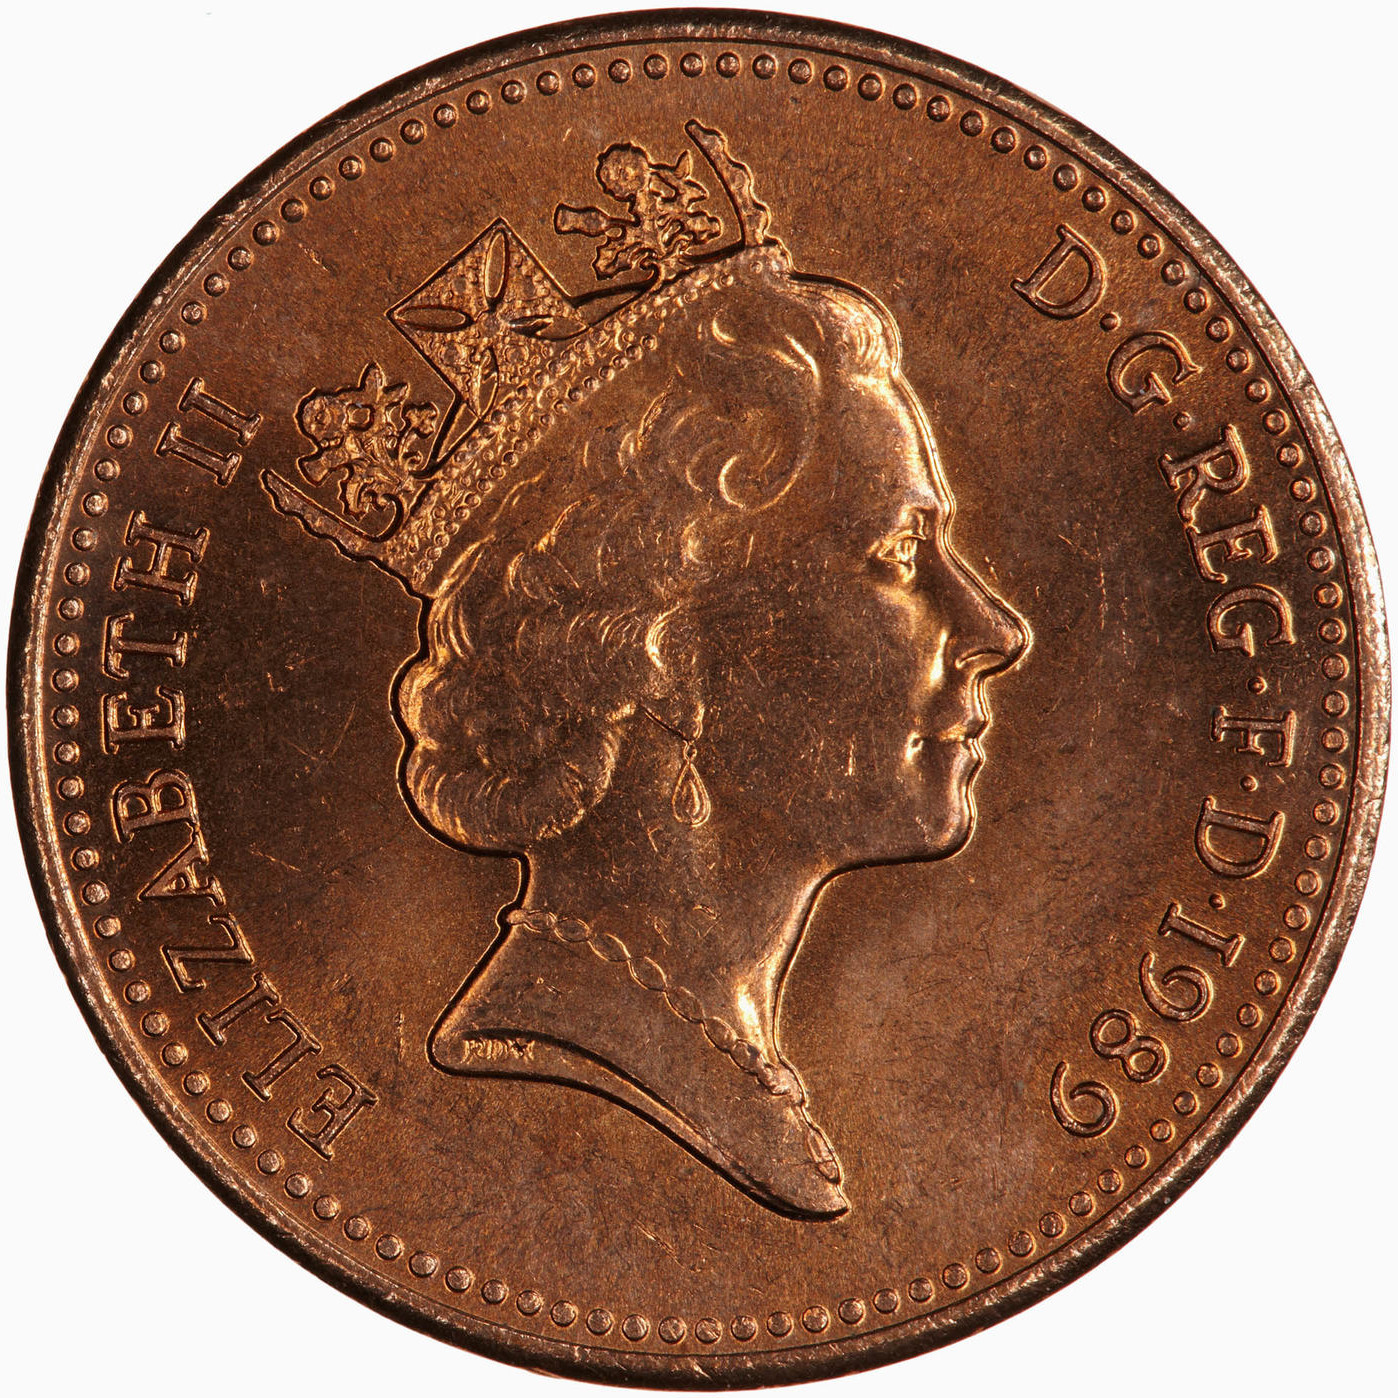 One Penny 1989: Photo Coin - 1 Penny, Elizabeth II, Great Britain, 1989